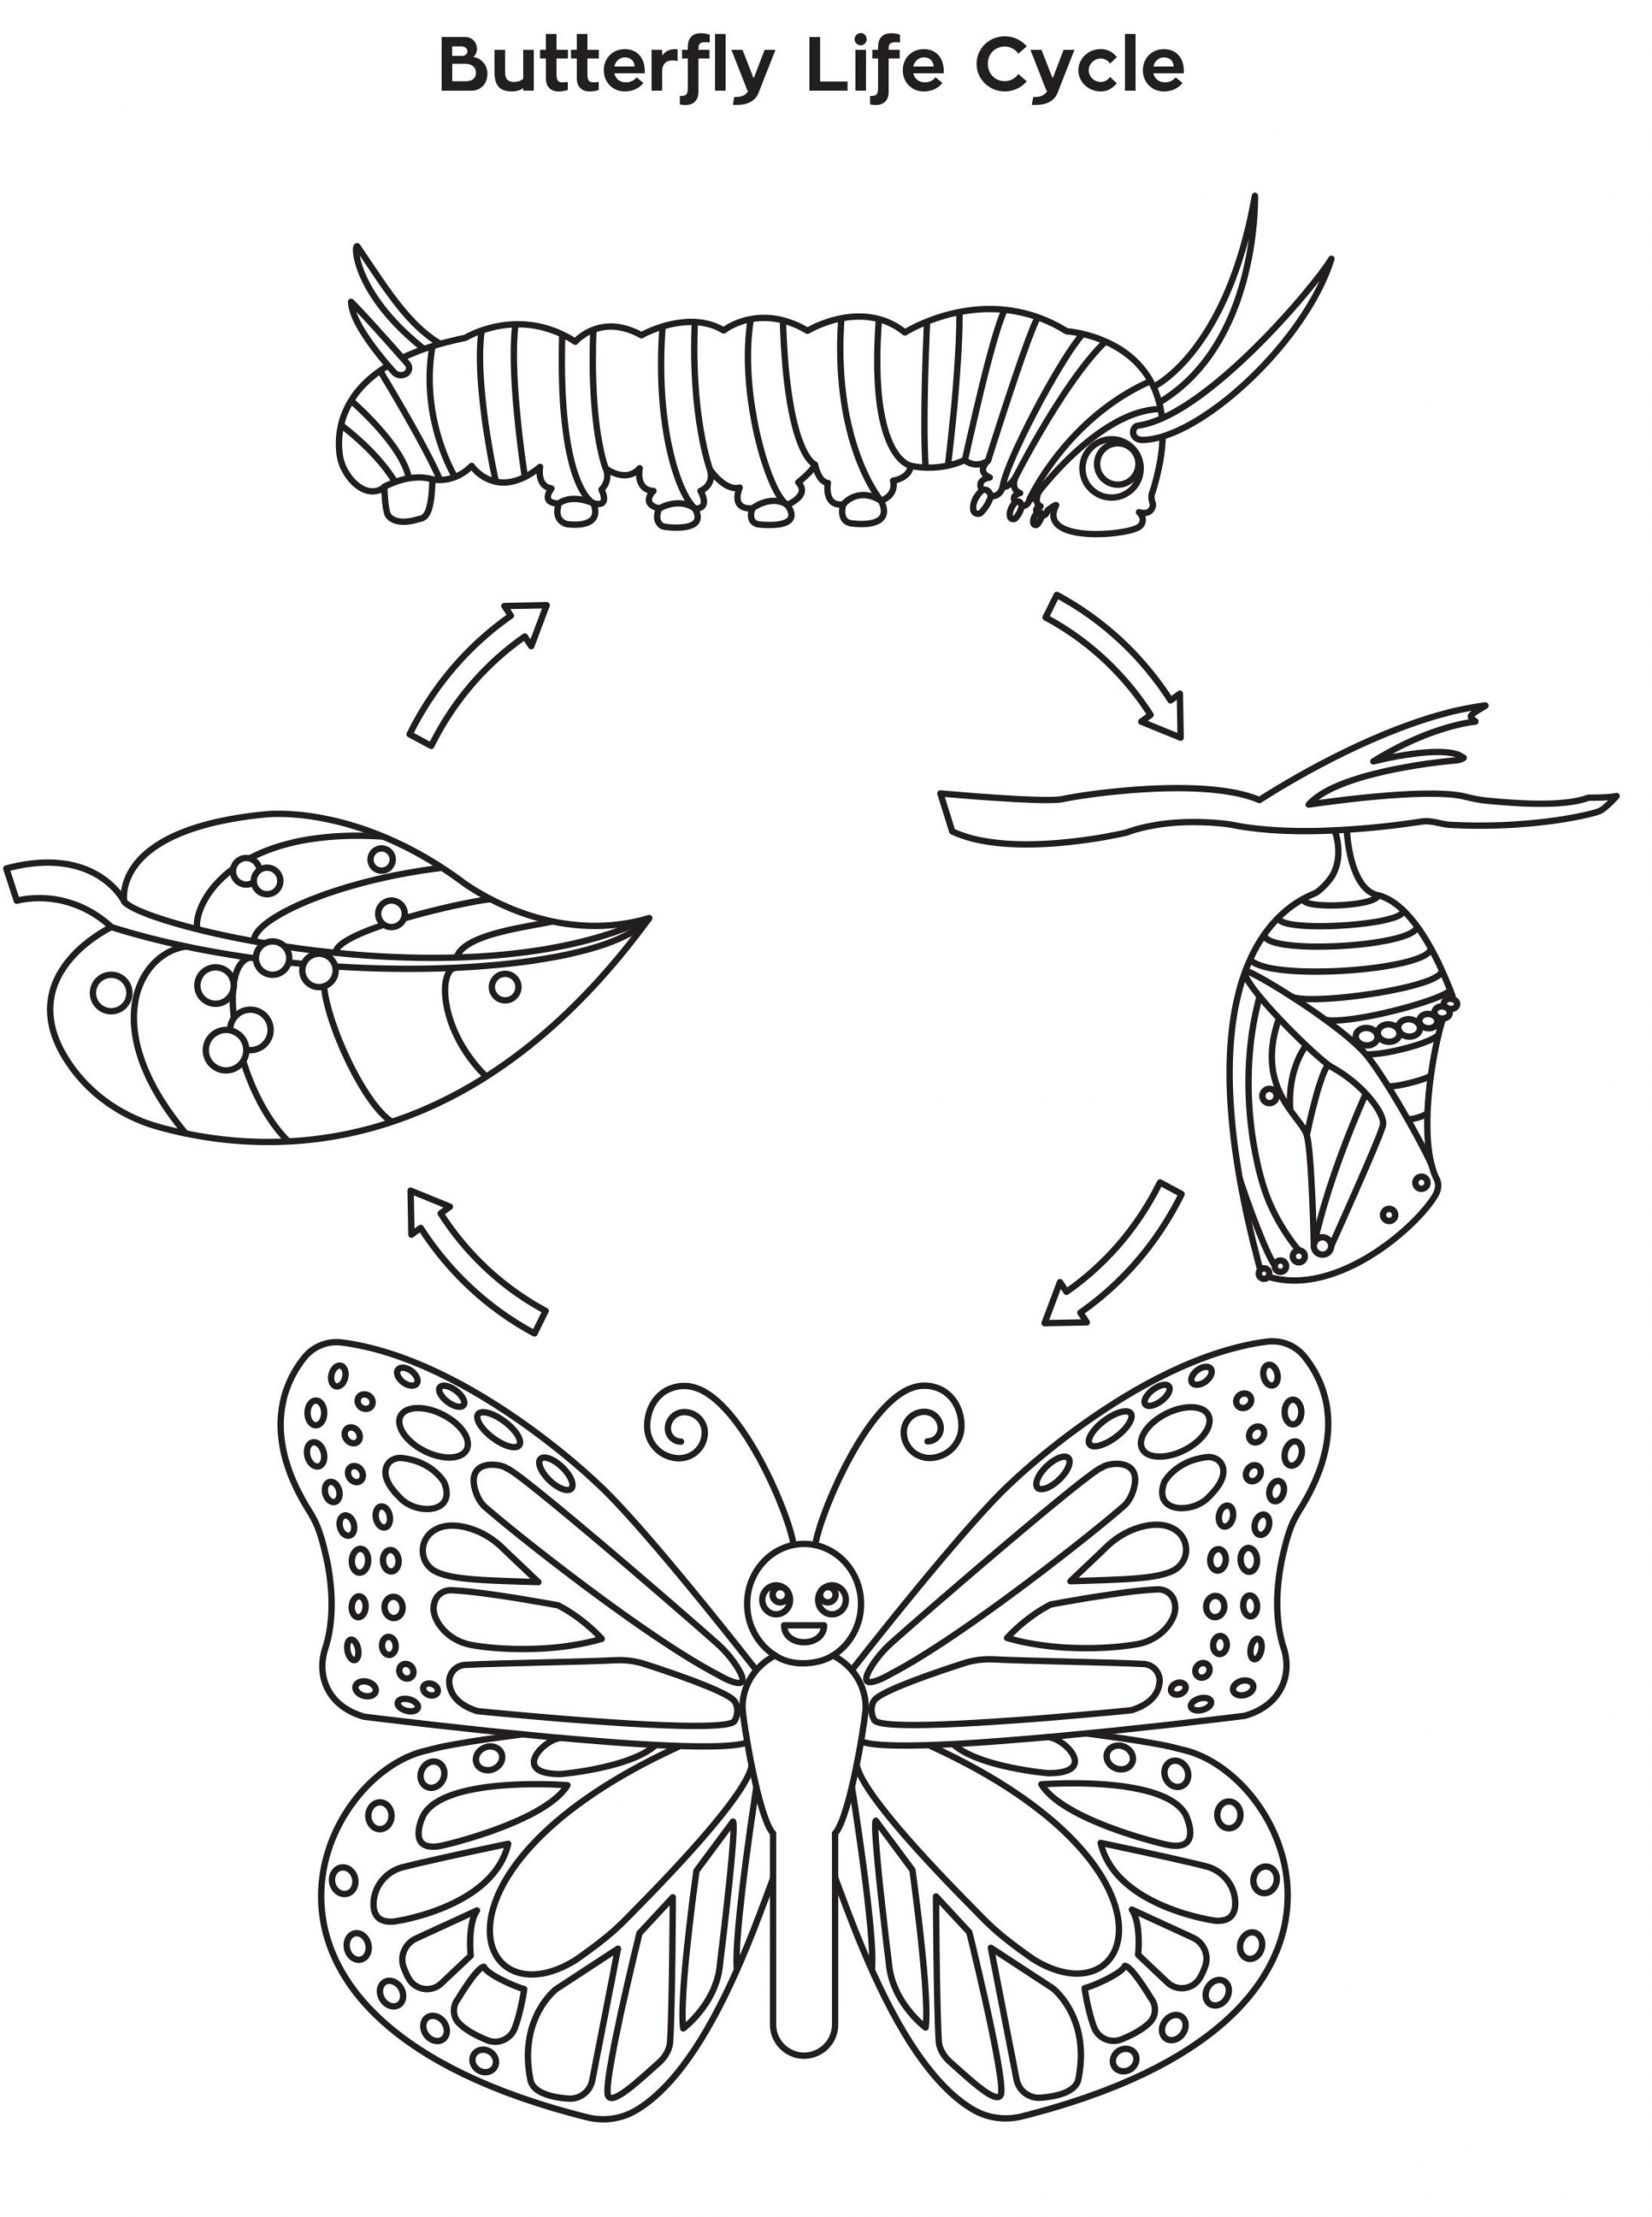 Pin On Insects In 2021 Butterfly Coloring Page Butterfly Life Cycle Kindergarten Butterfly Drawing [ 2560 x 1908 Pixel ]